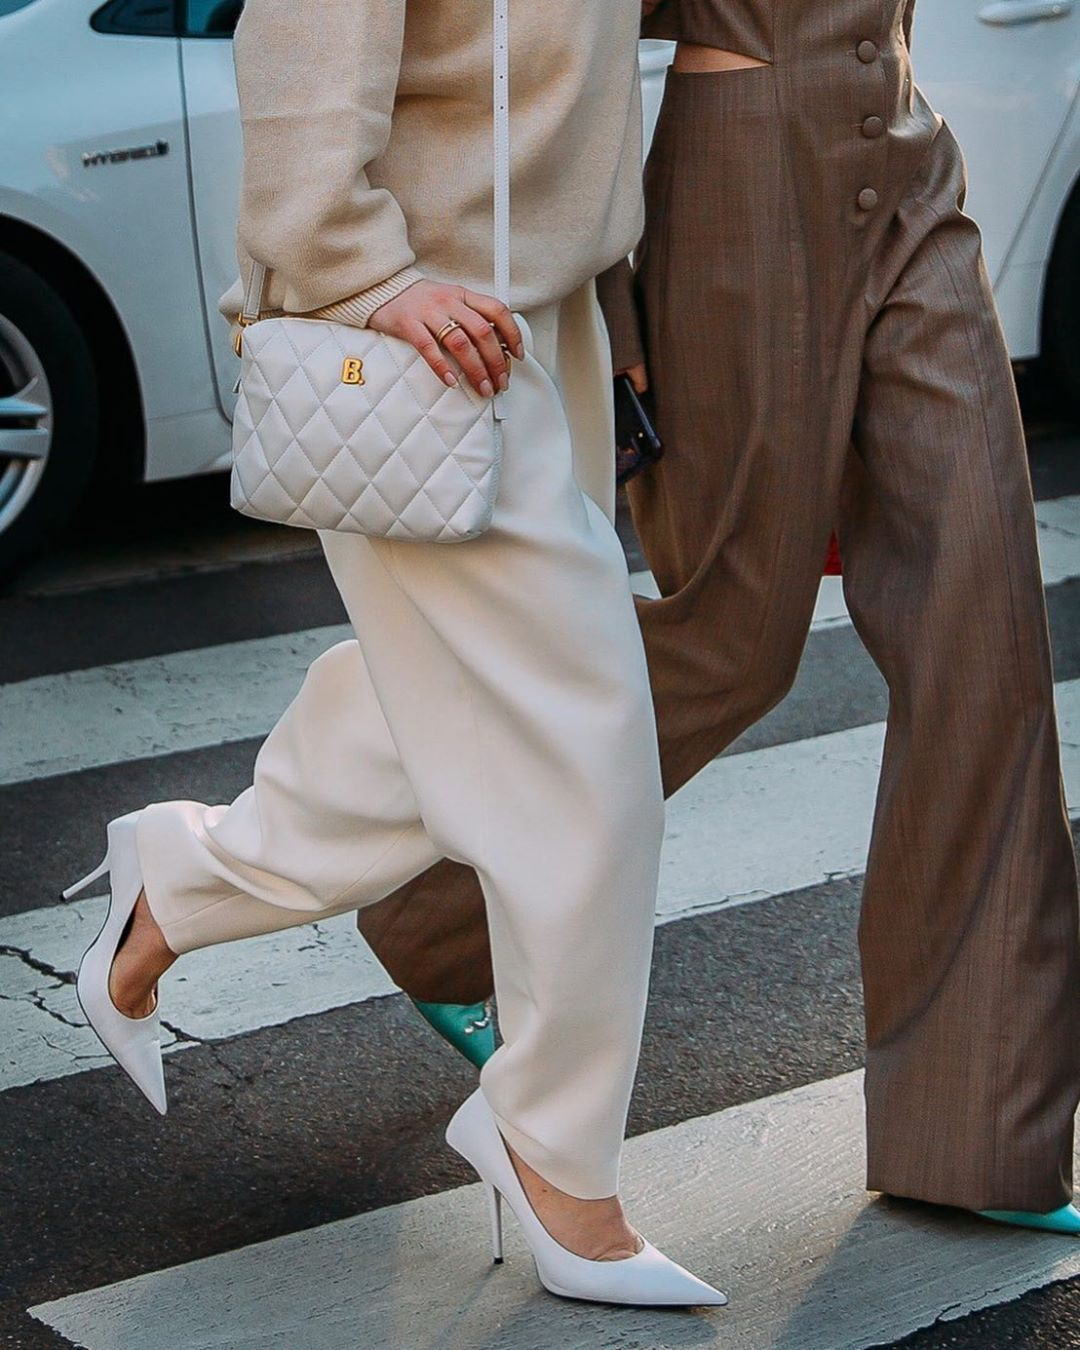 balenciaga-b-quilted-shoulder-bag-white-jeanette-madsen-street-style